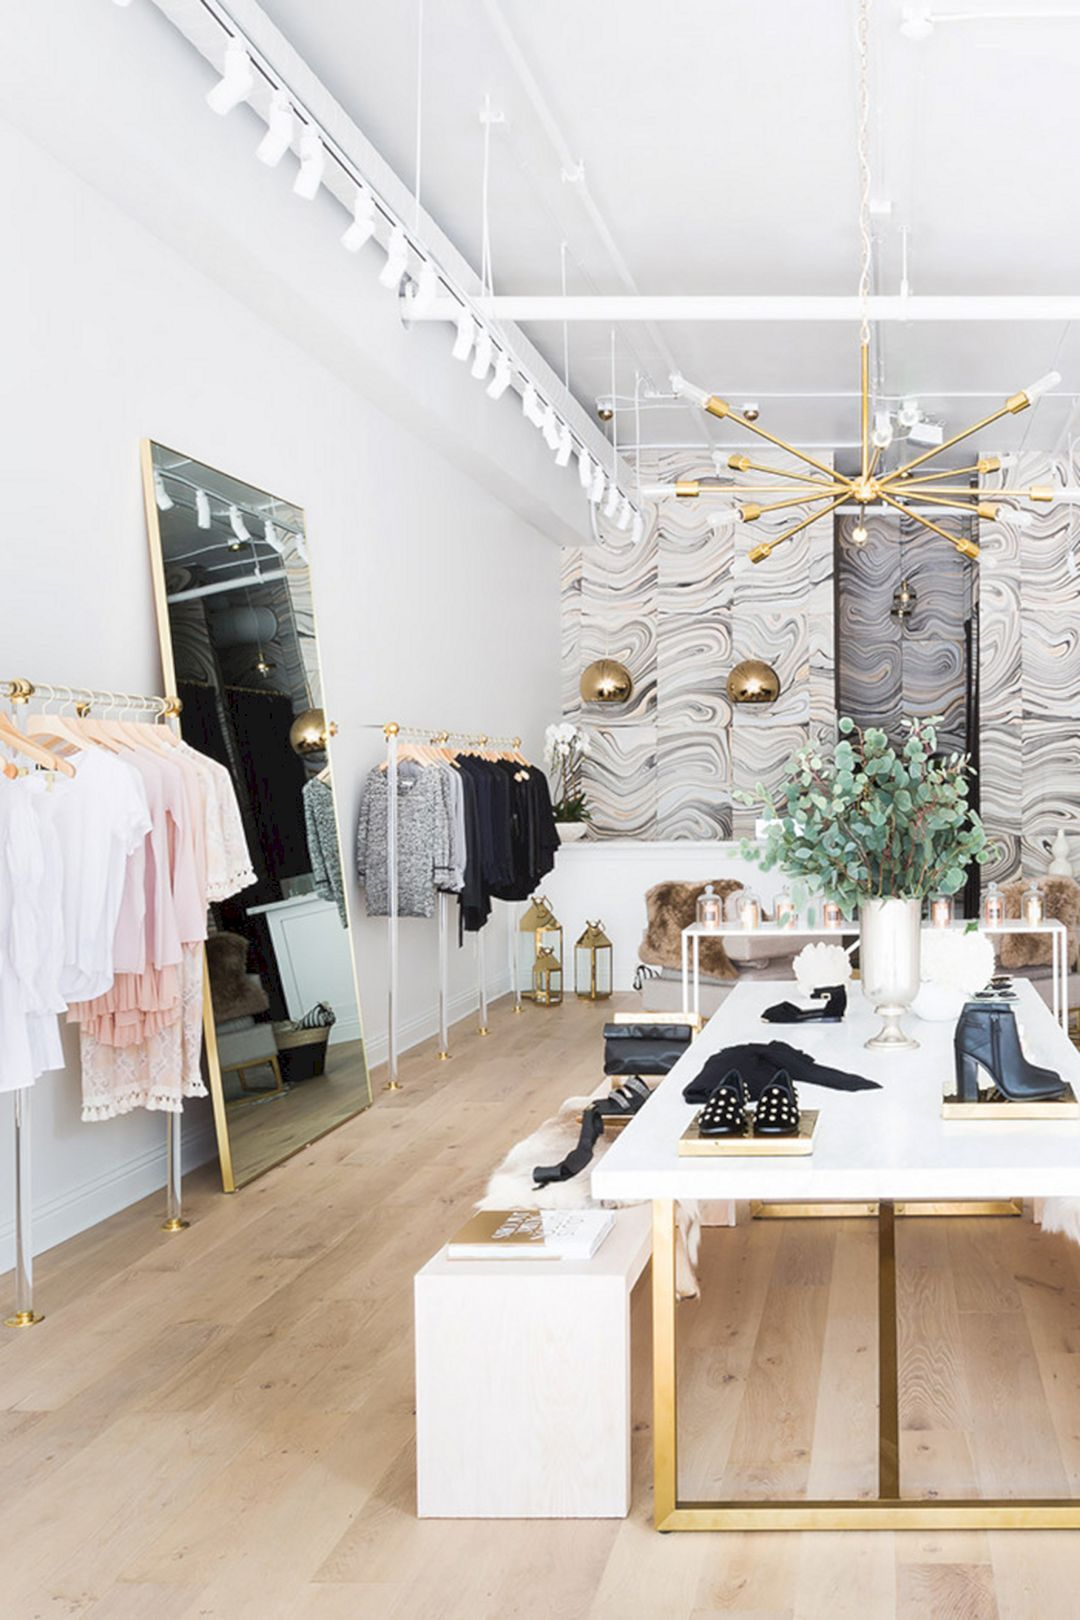 Best best 35 clothing boutique interior design ideas you need to try https